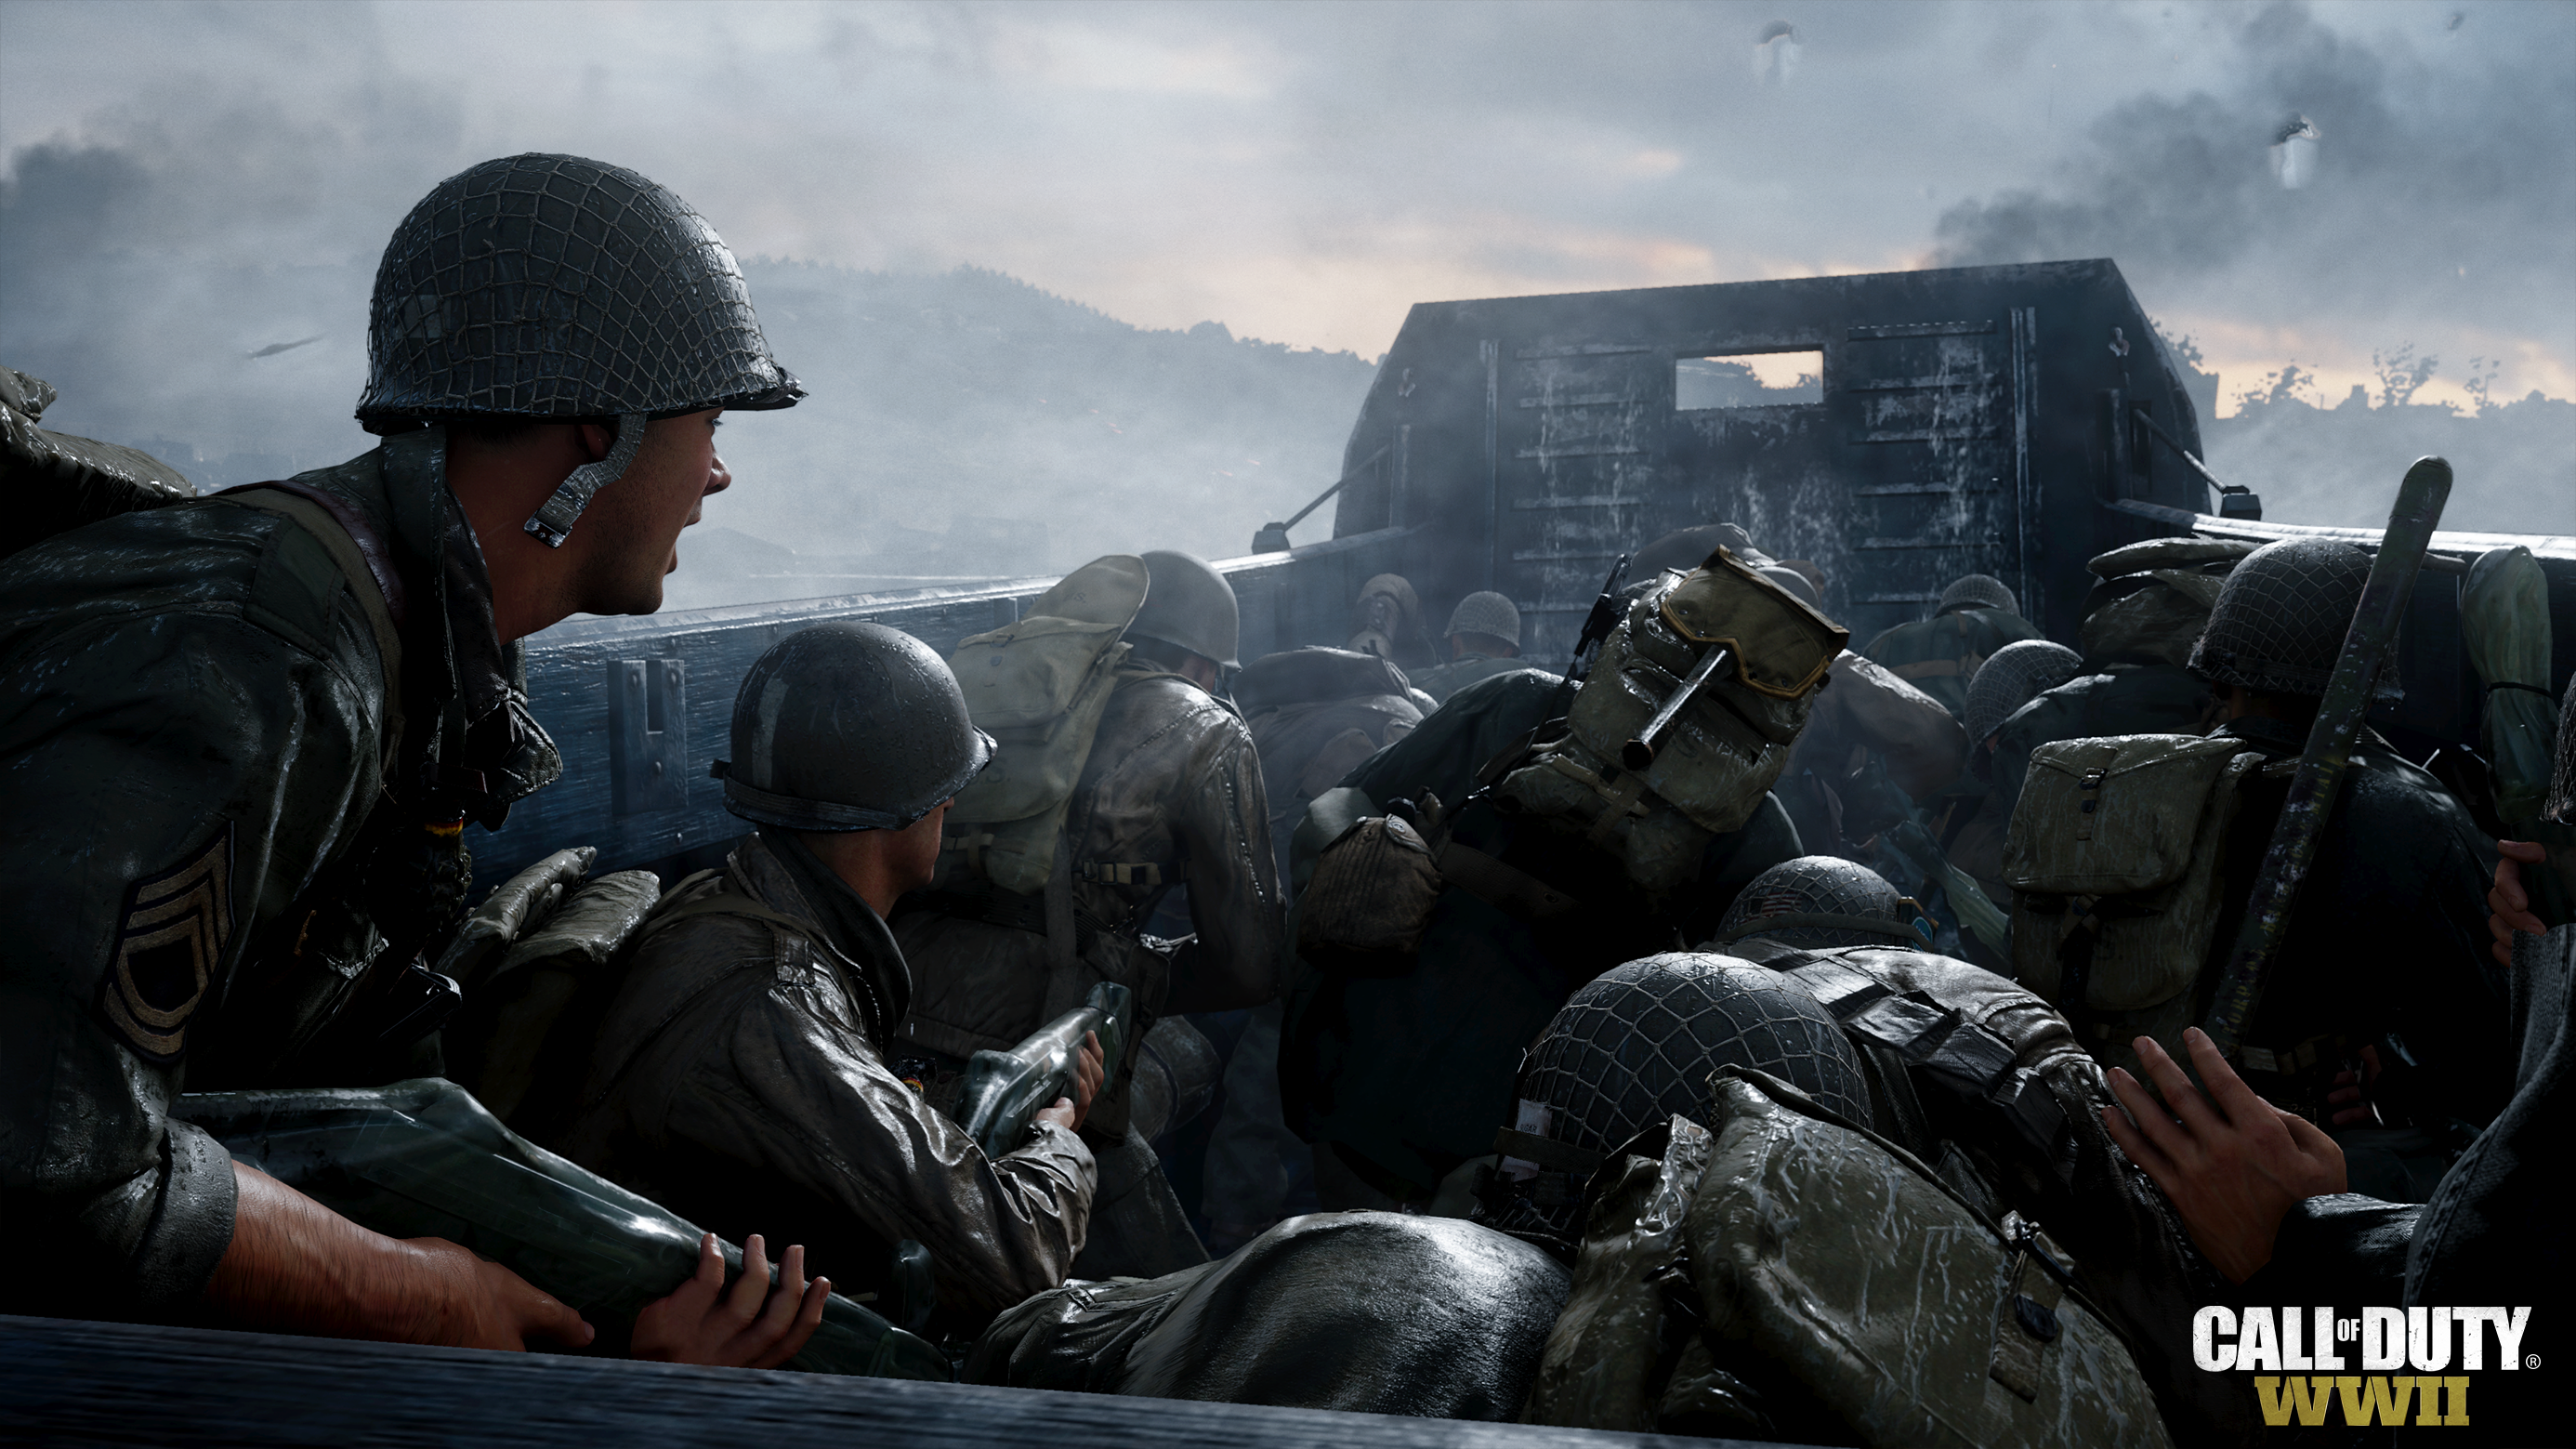 call of duty world war ii review the